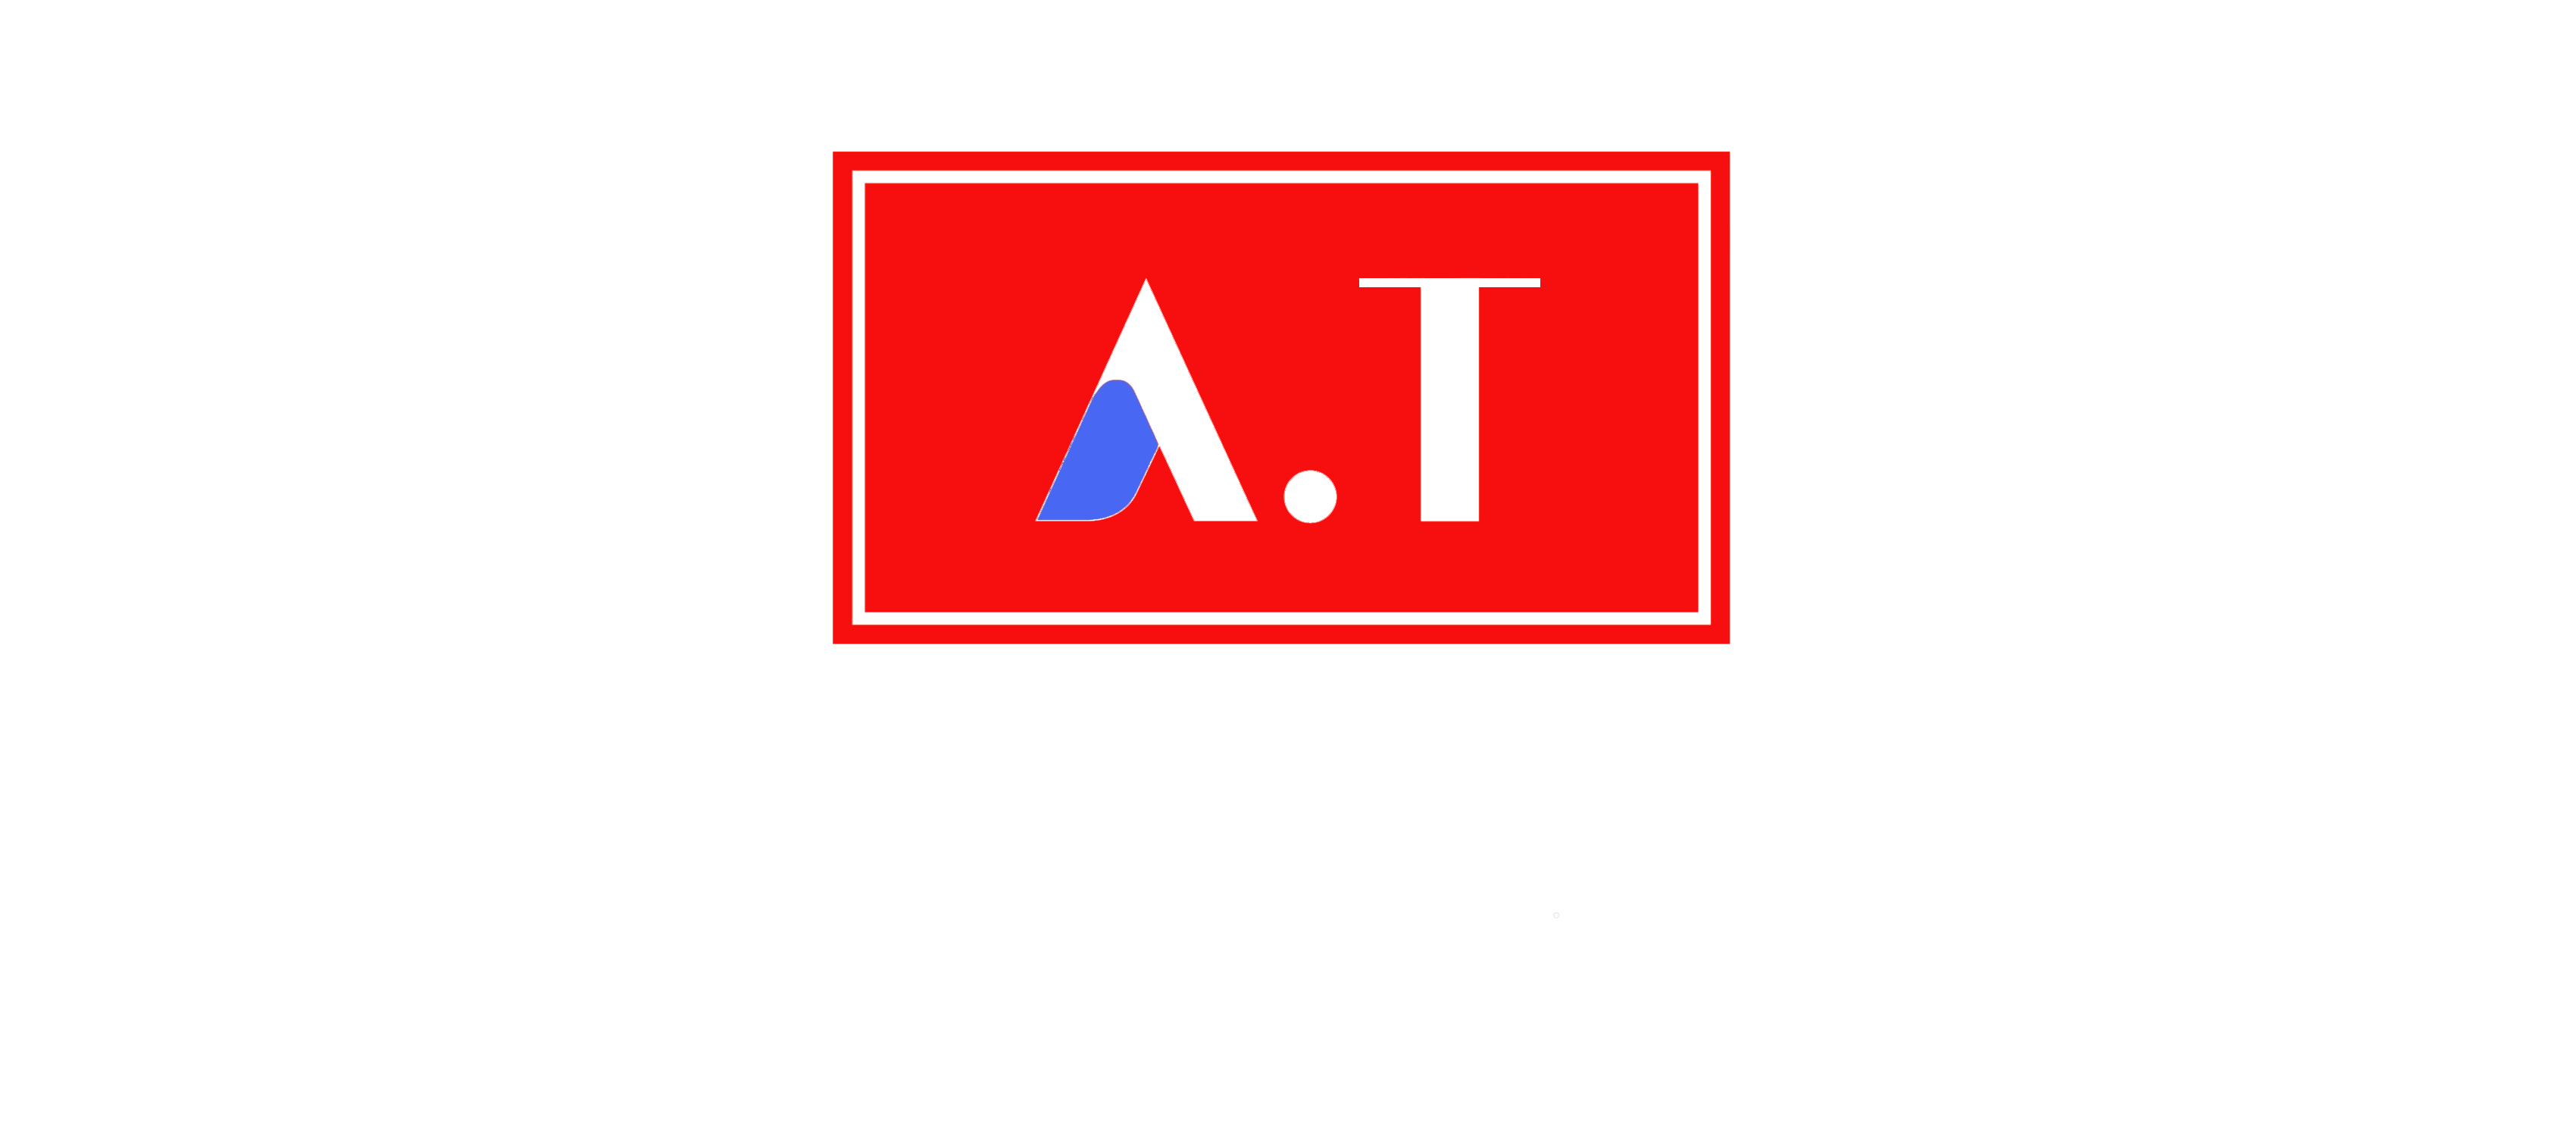 Advance Tutors, Slough